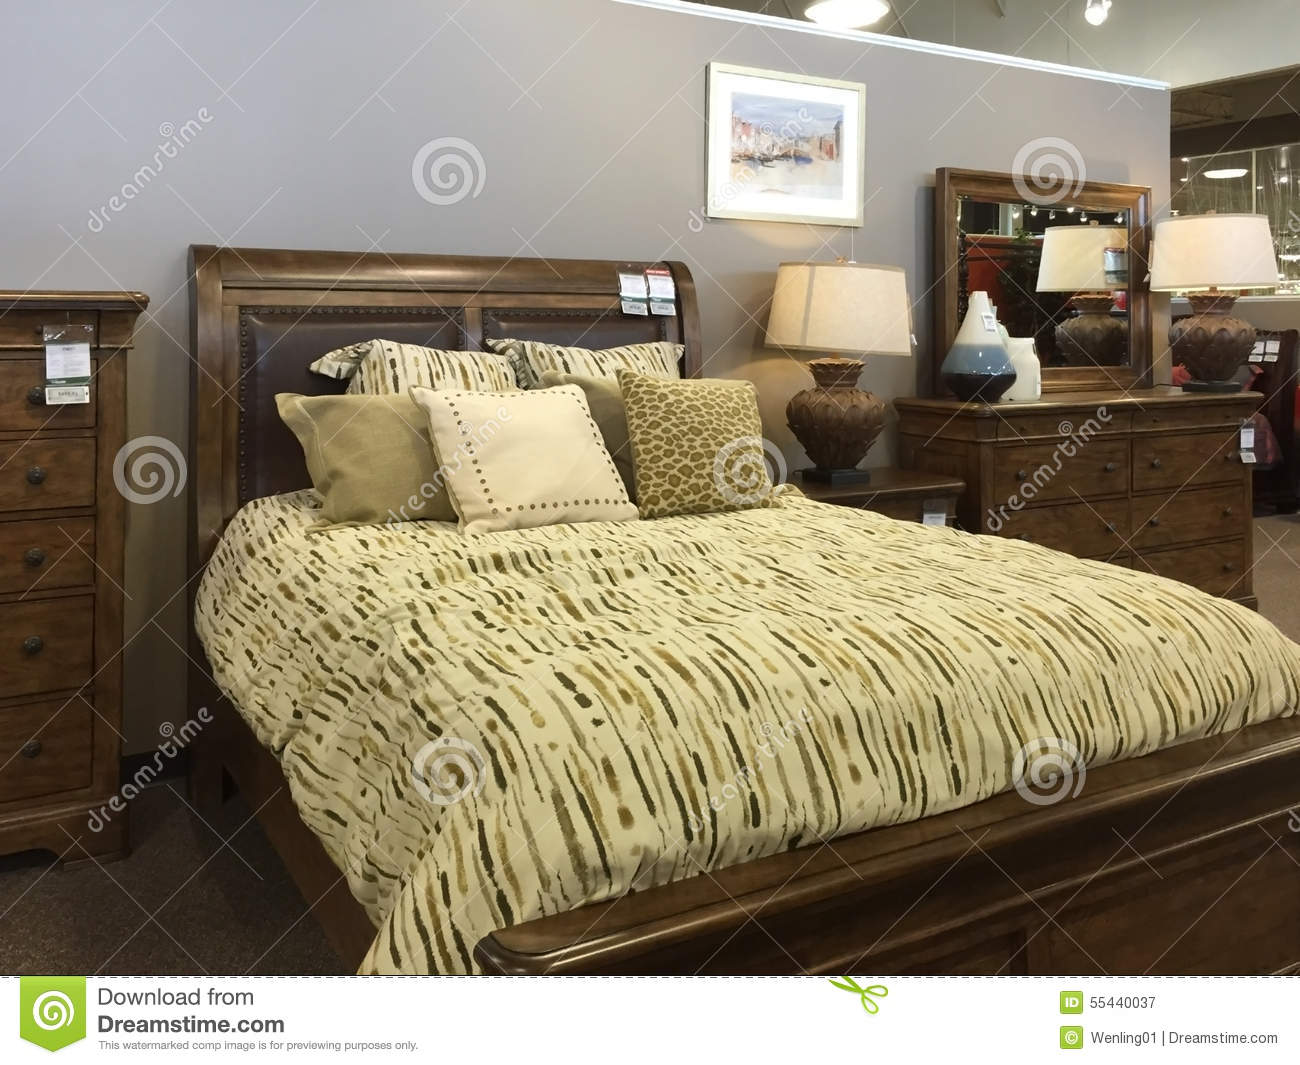 Selling Bedroom Furniture Nice Bedroom Furniture Selling Editorial Photography Image 55440037